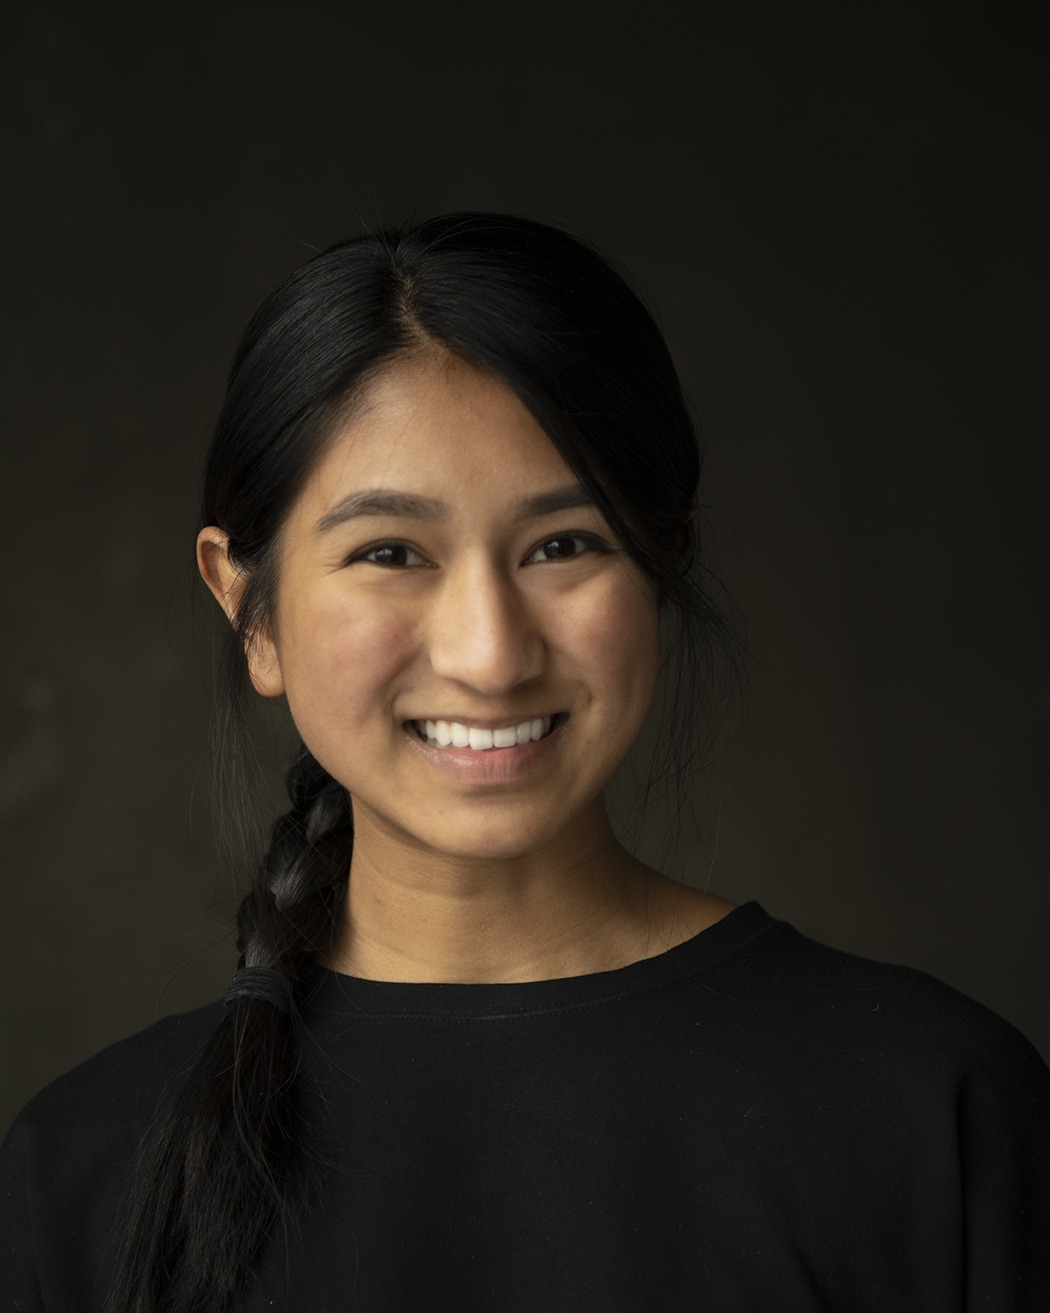 A person with a long black braid smiling in front of a black background